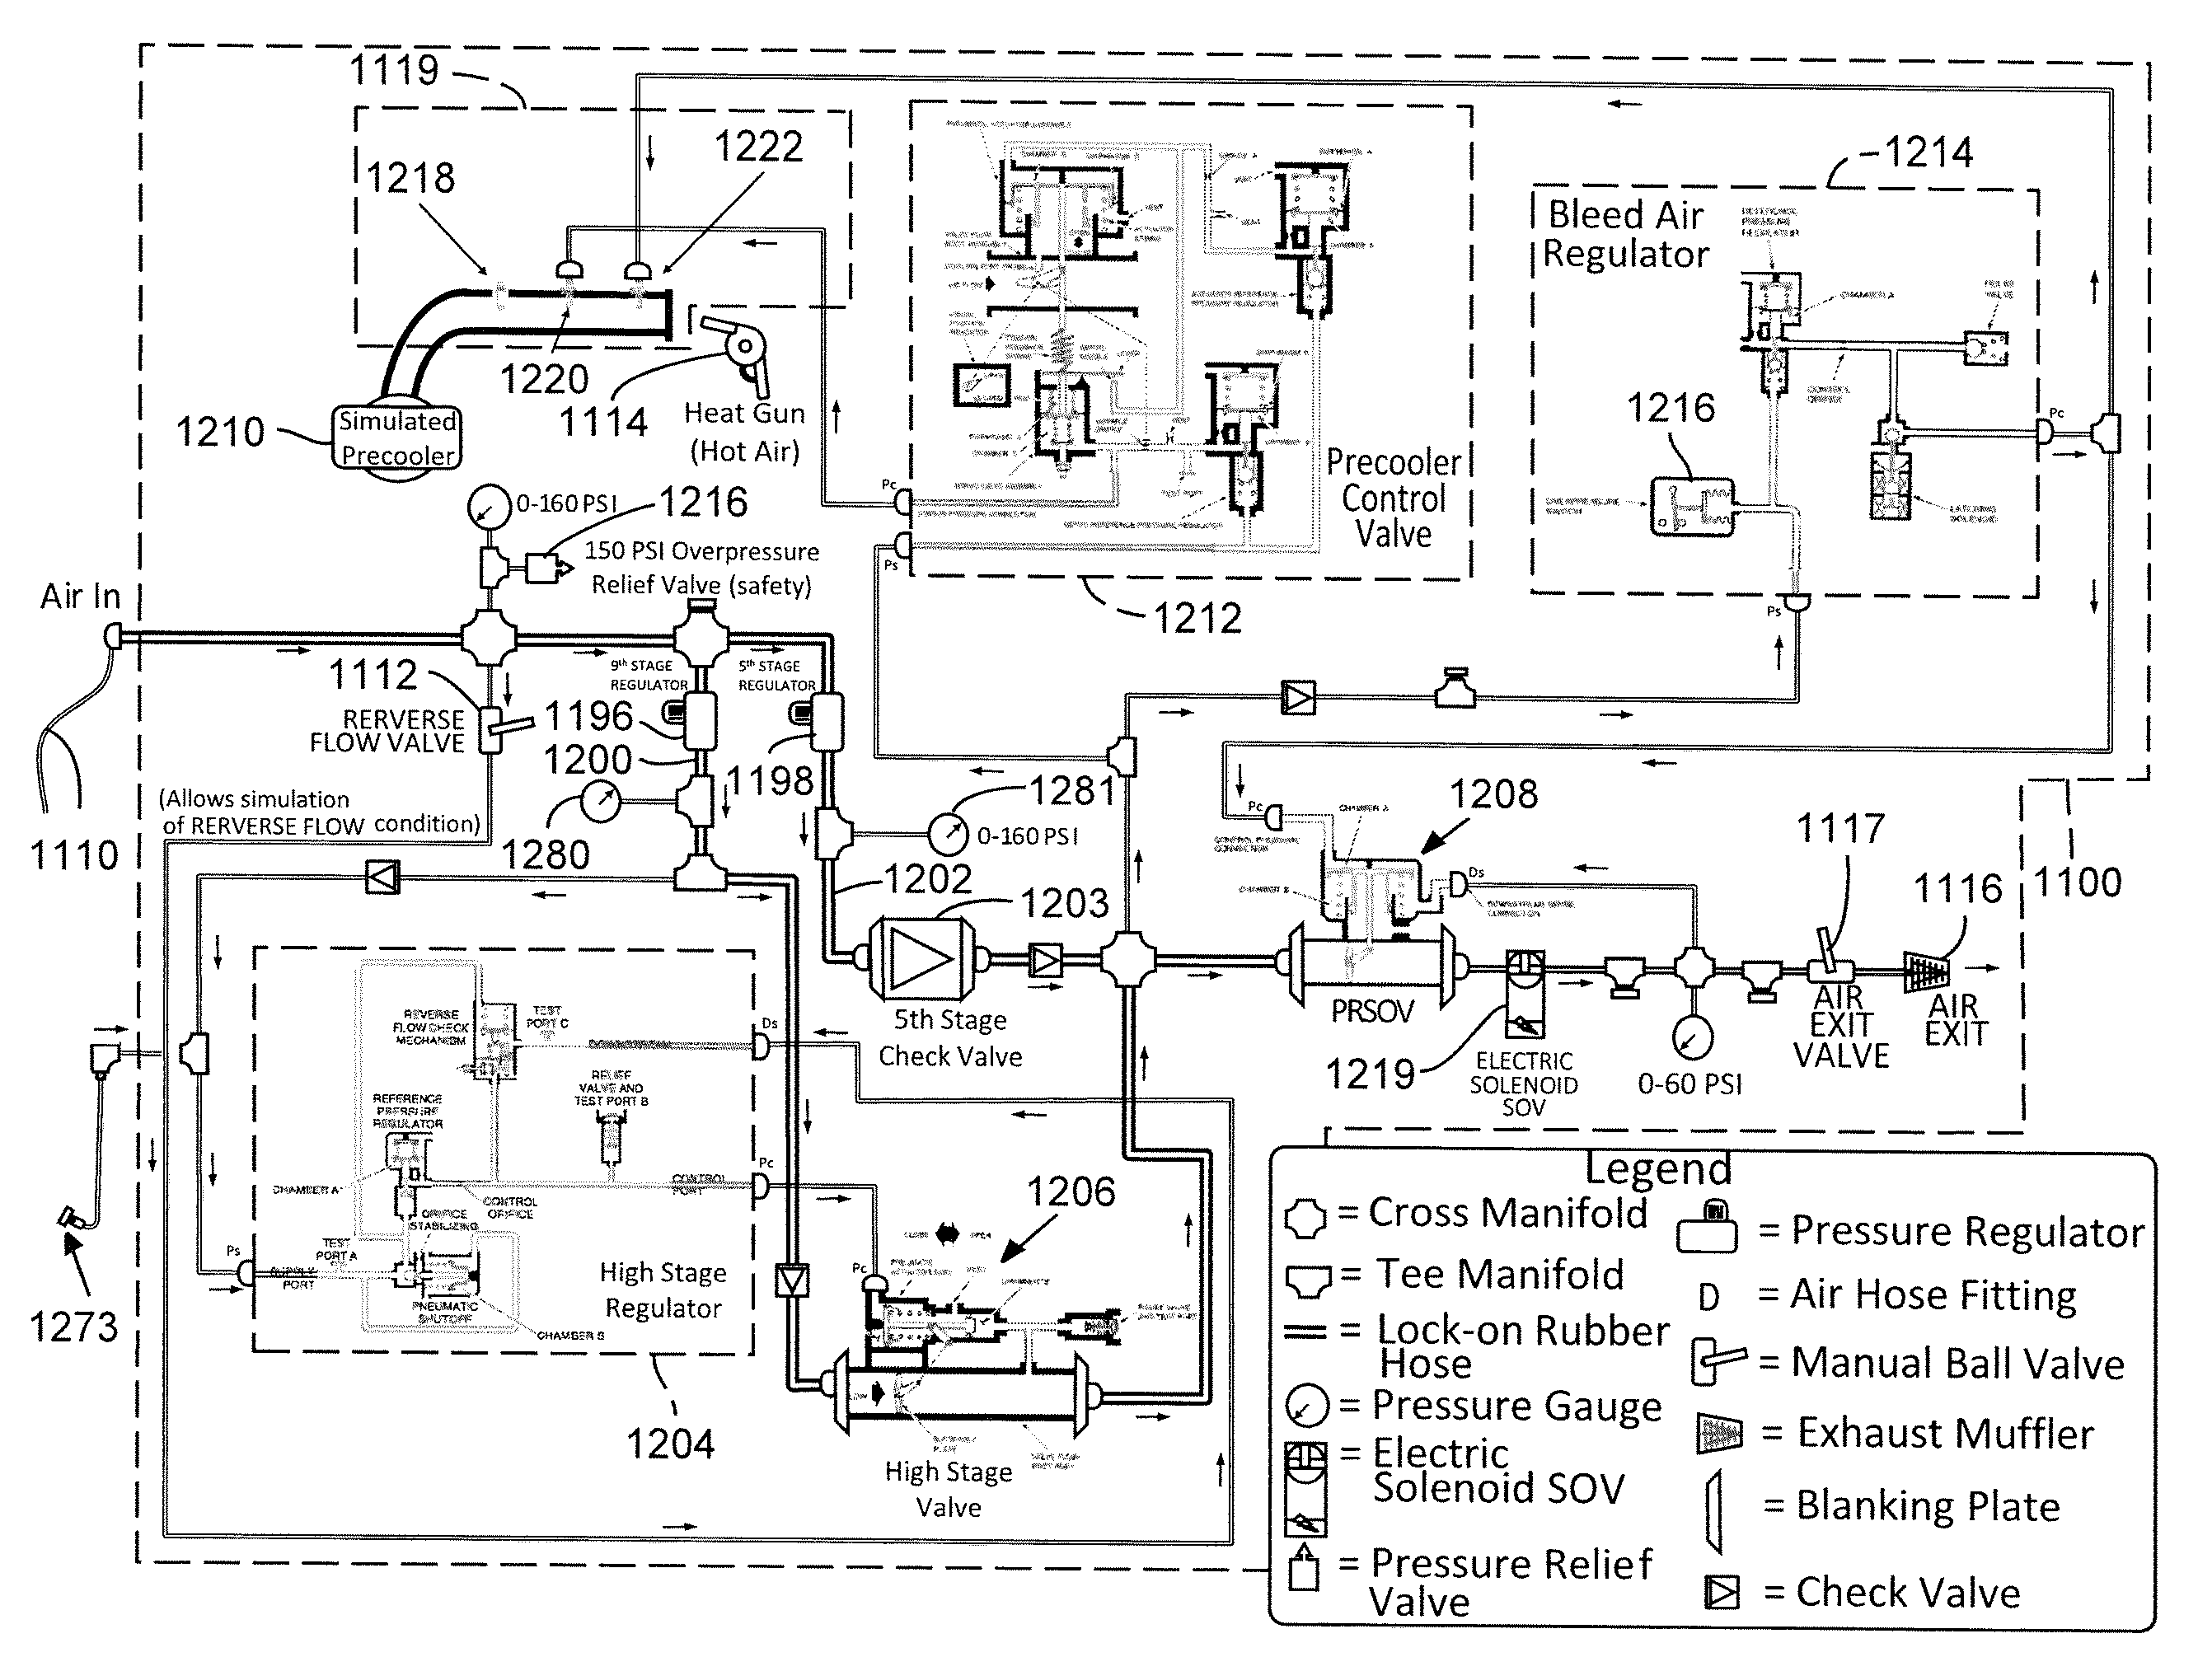 Microphone Wiring Schematic Diagrams Schematics Fantastic Cb Mic Gallery Best Images For Amazing Rci 2950 Ornament And At Intercom